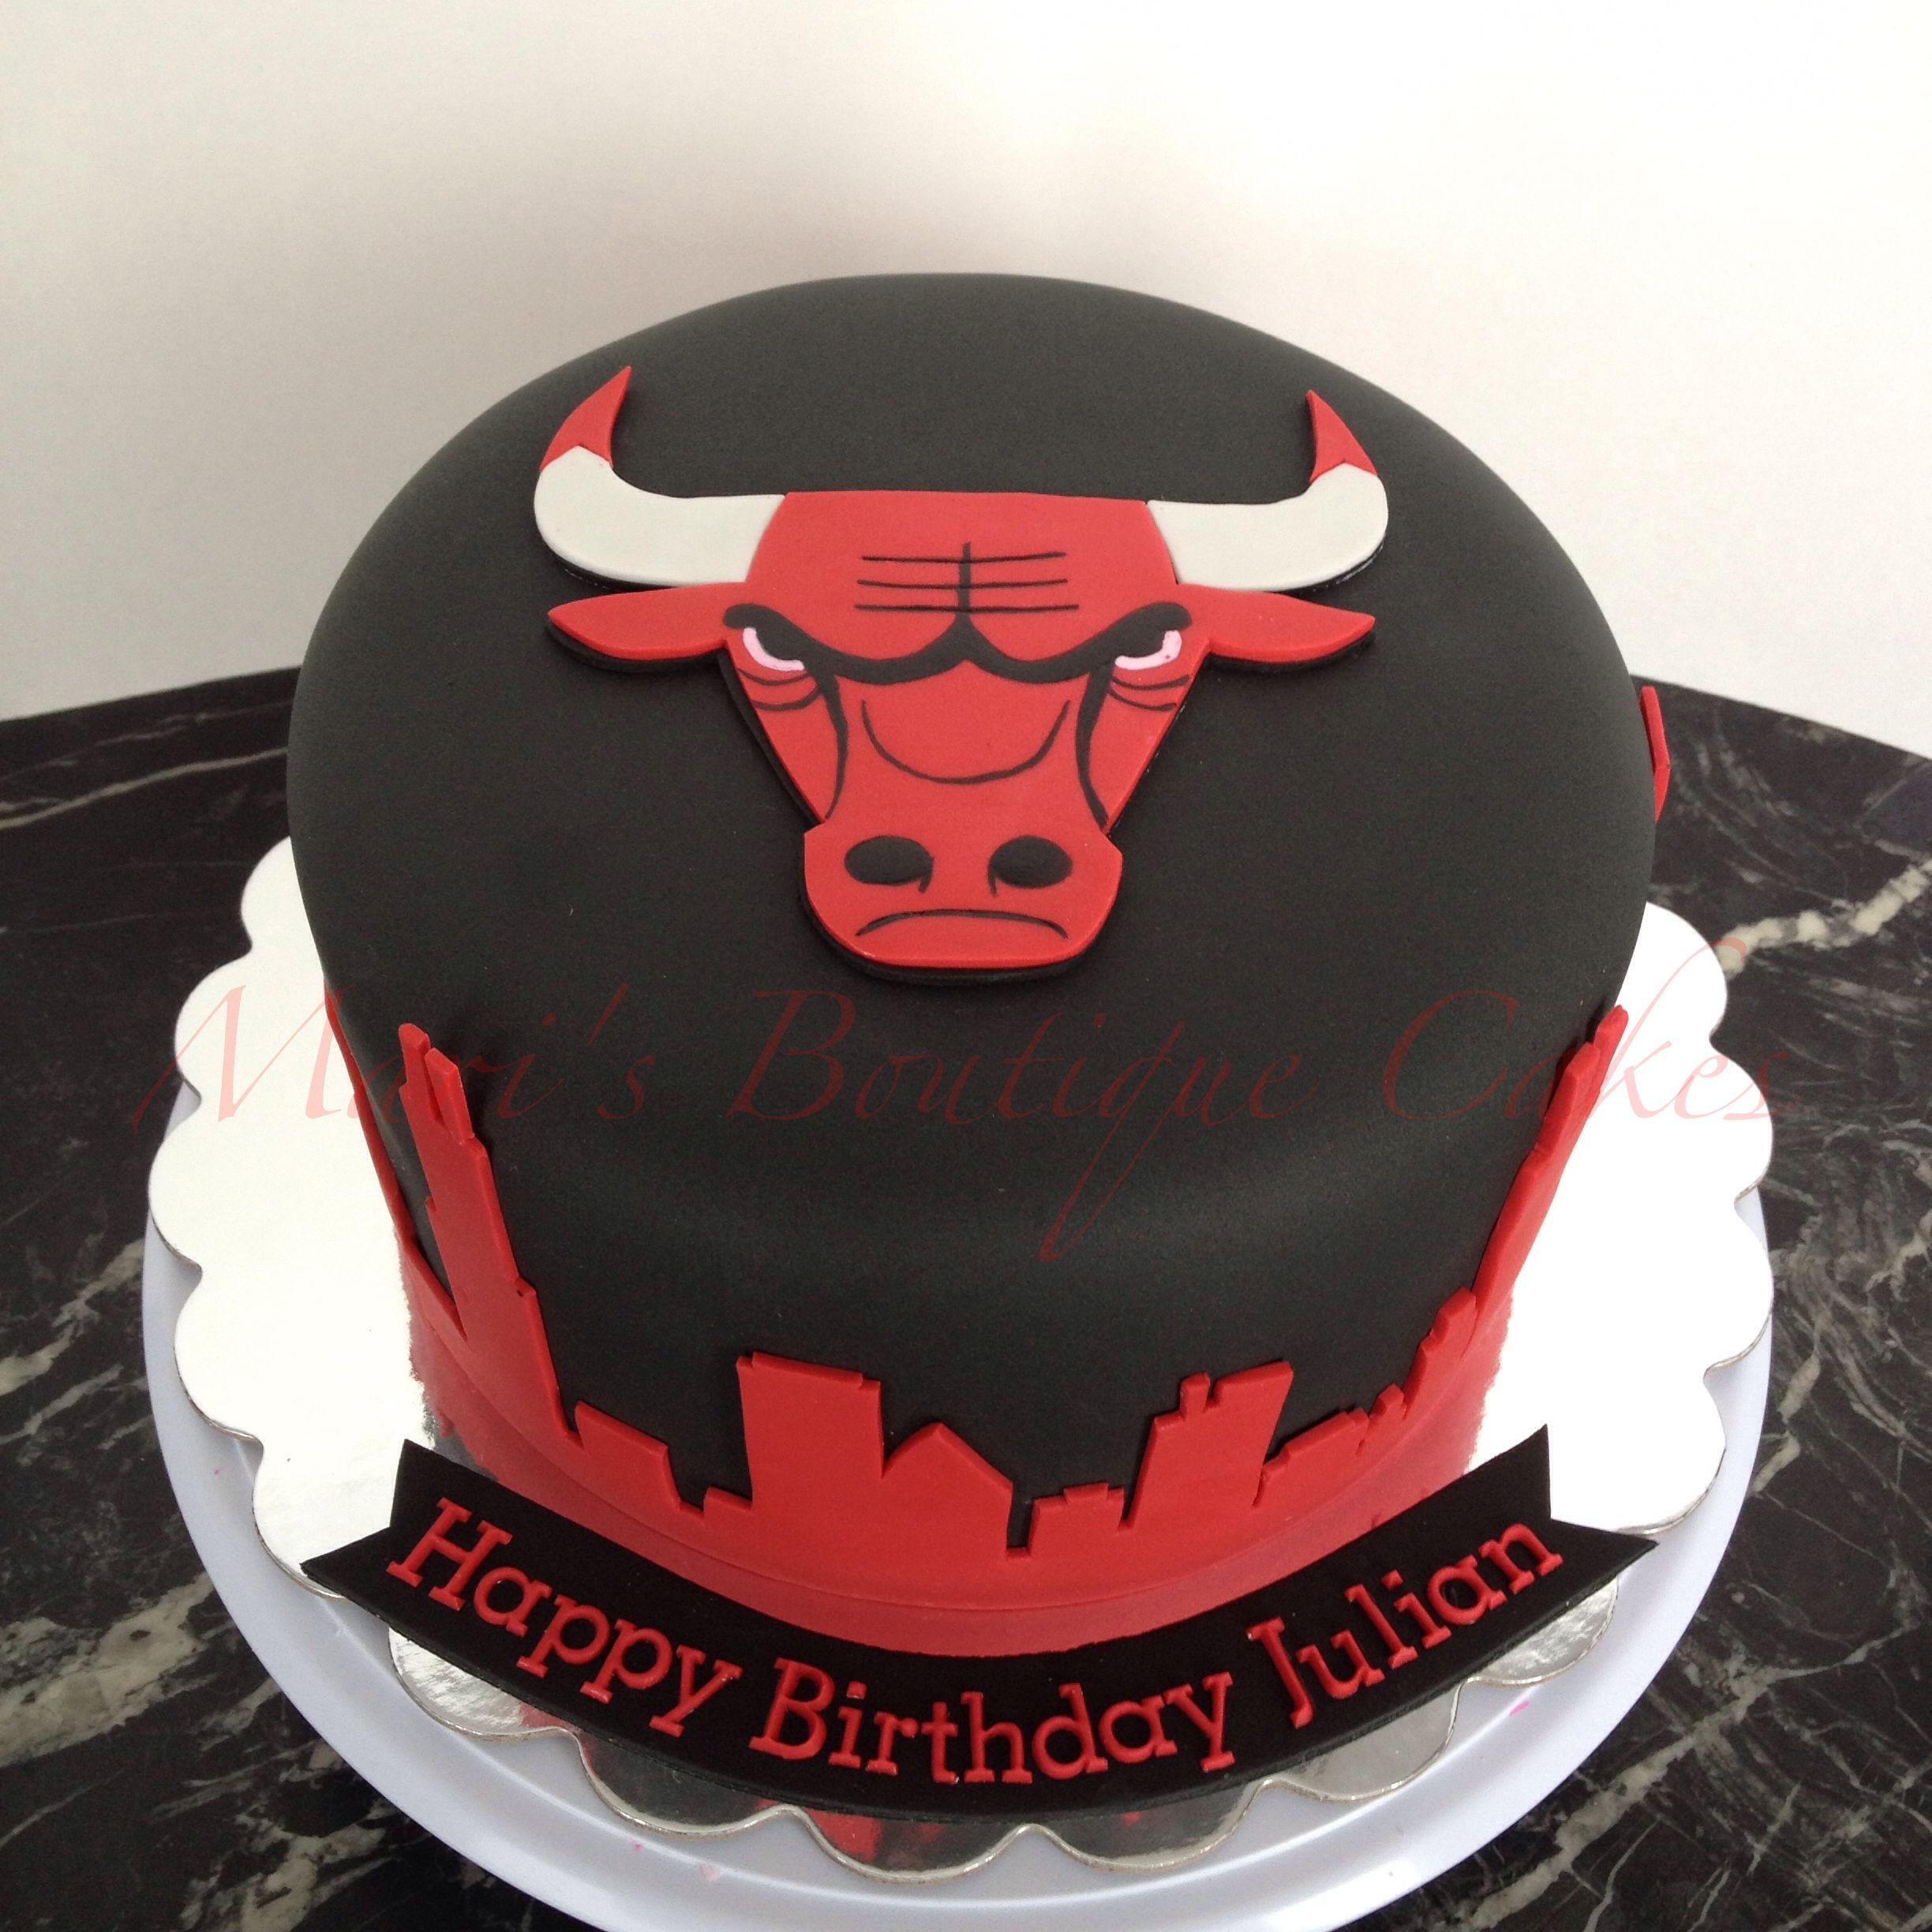 34 Best Chicago Cubs Cakes Images On Pinterest: Best 25+ Chicago Bulls Cake Ideas On Pinterest